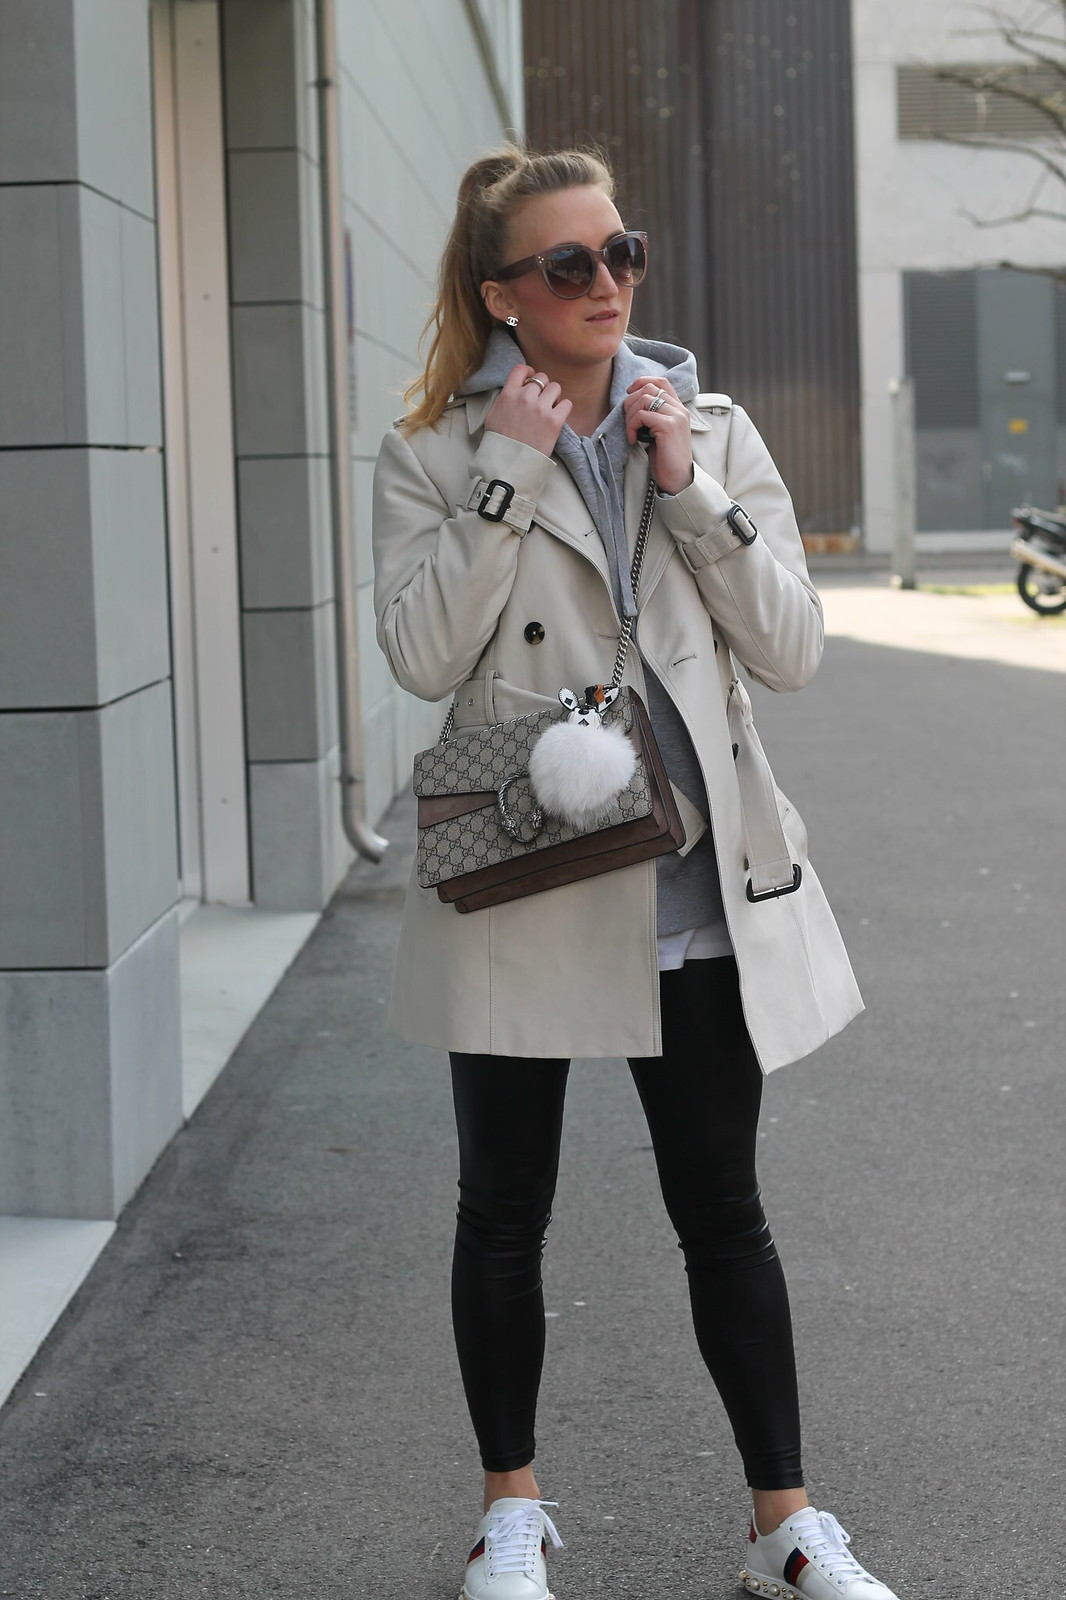 trenchcoat-whole-outfit-wiebkembg